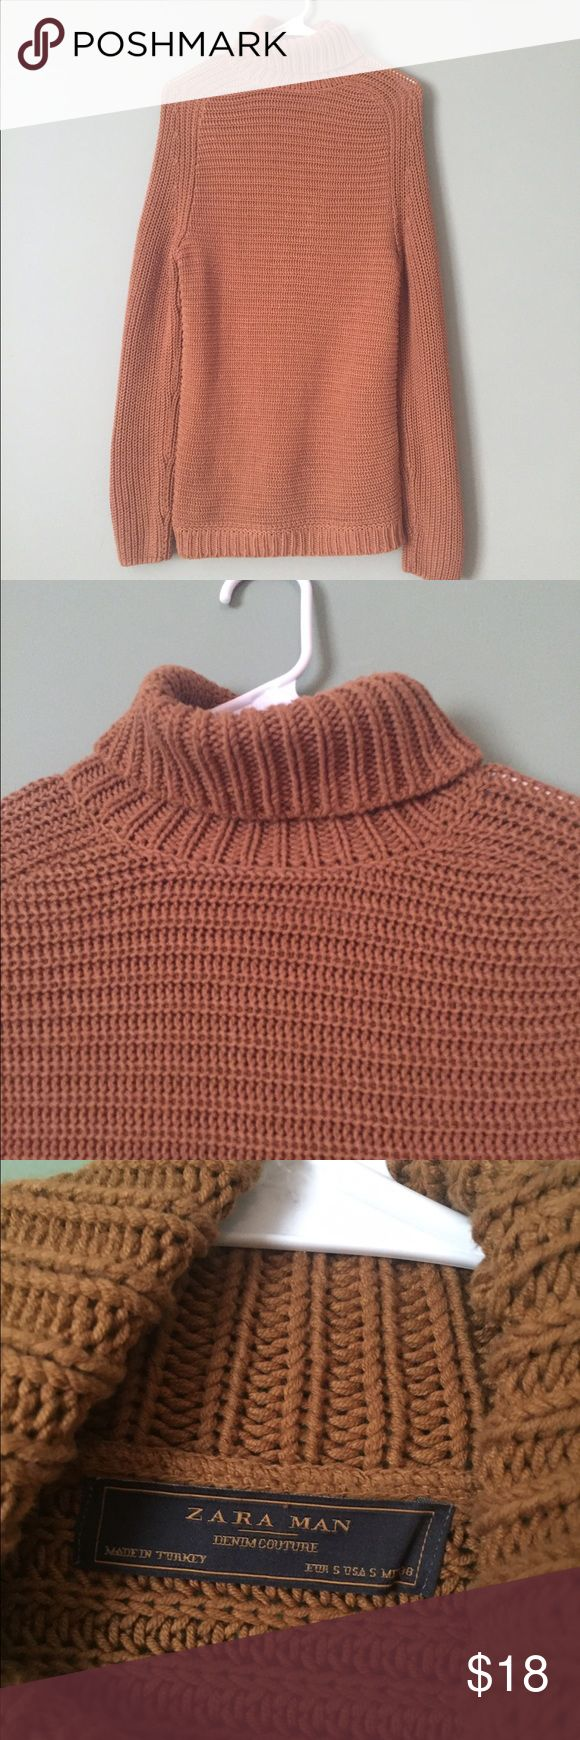 Zara Man Turtleneck Camel color Zara man turtleneck. Great condition no pulls no stains. Bottom is slightly tighter but not elastic. Can be unisex. Zara Sweaters Turtleneck